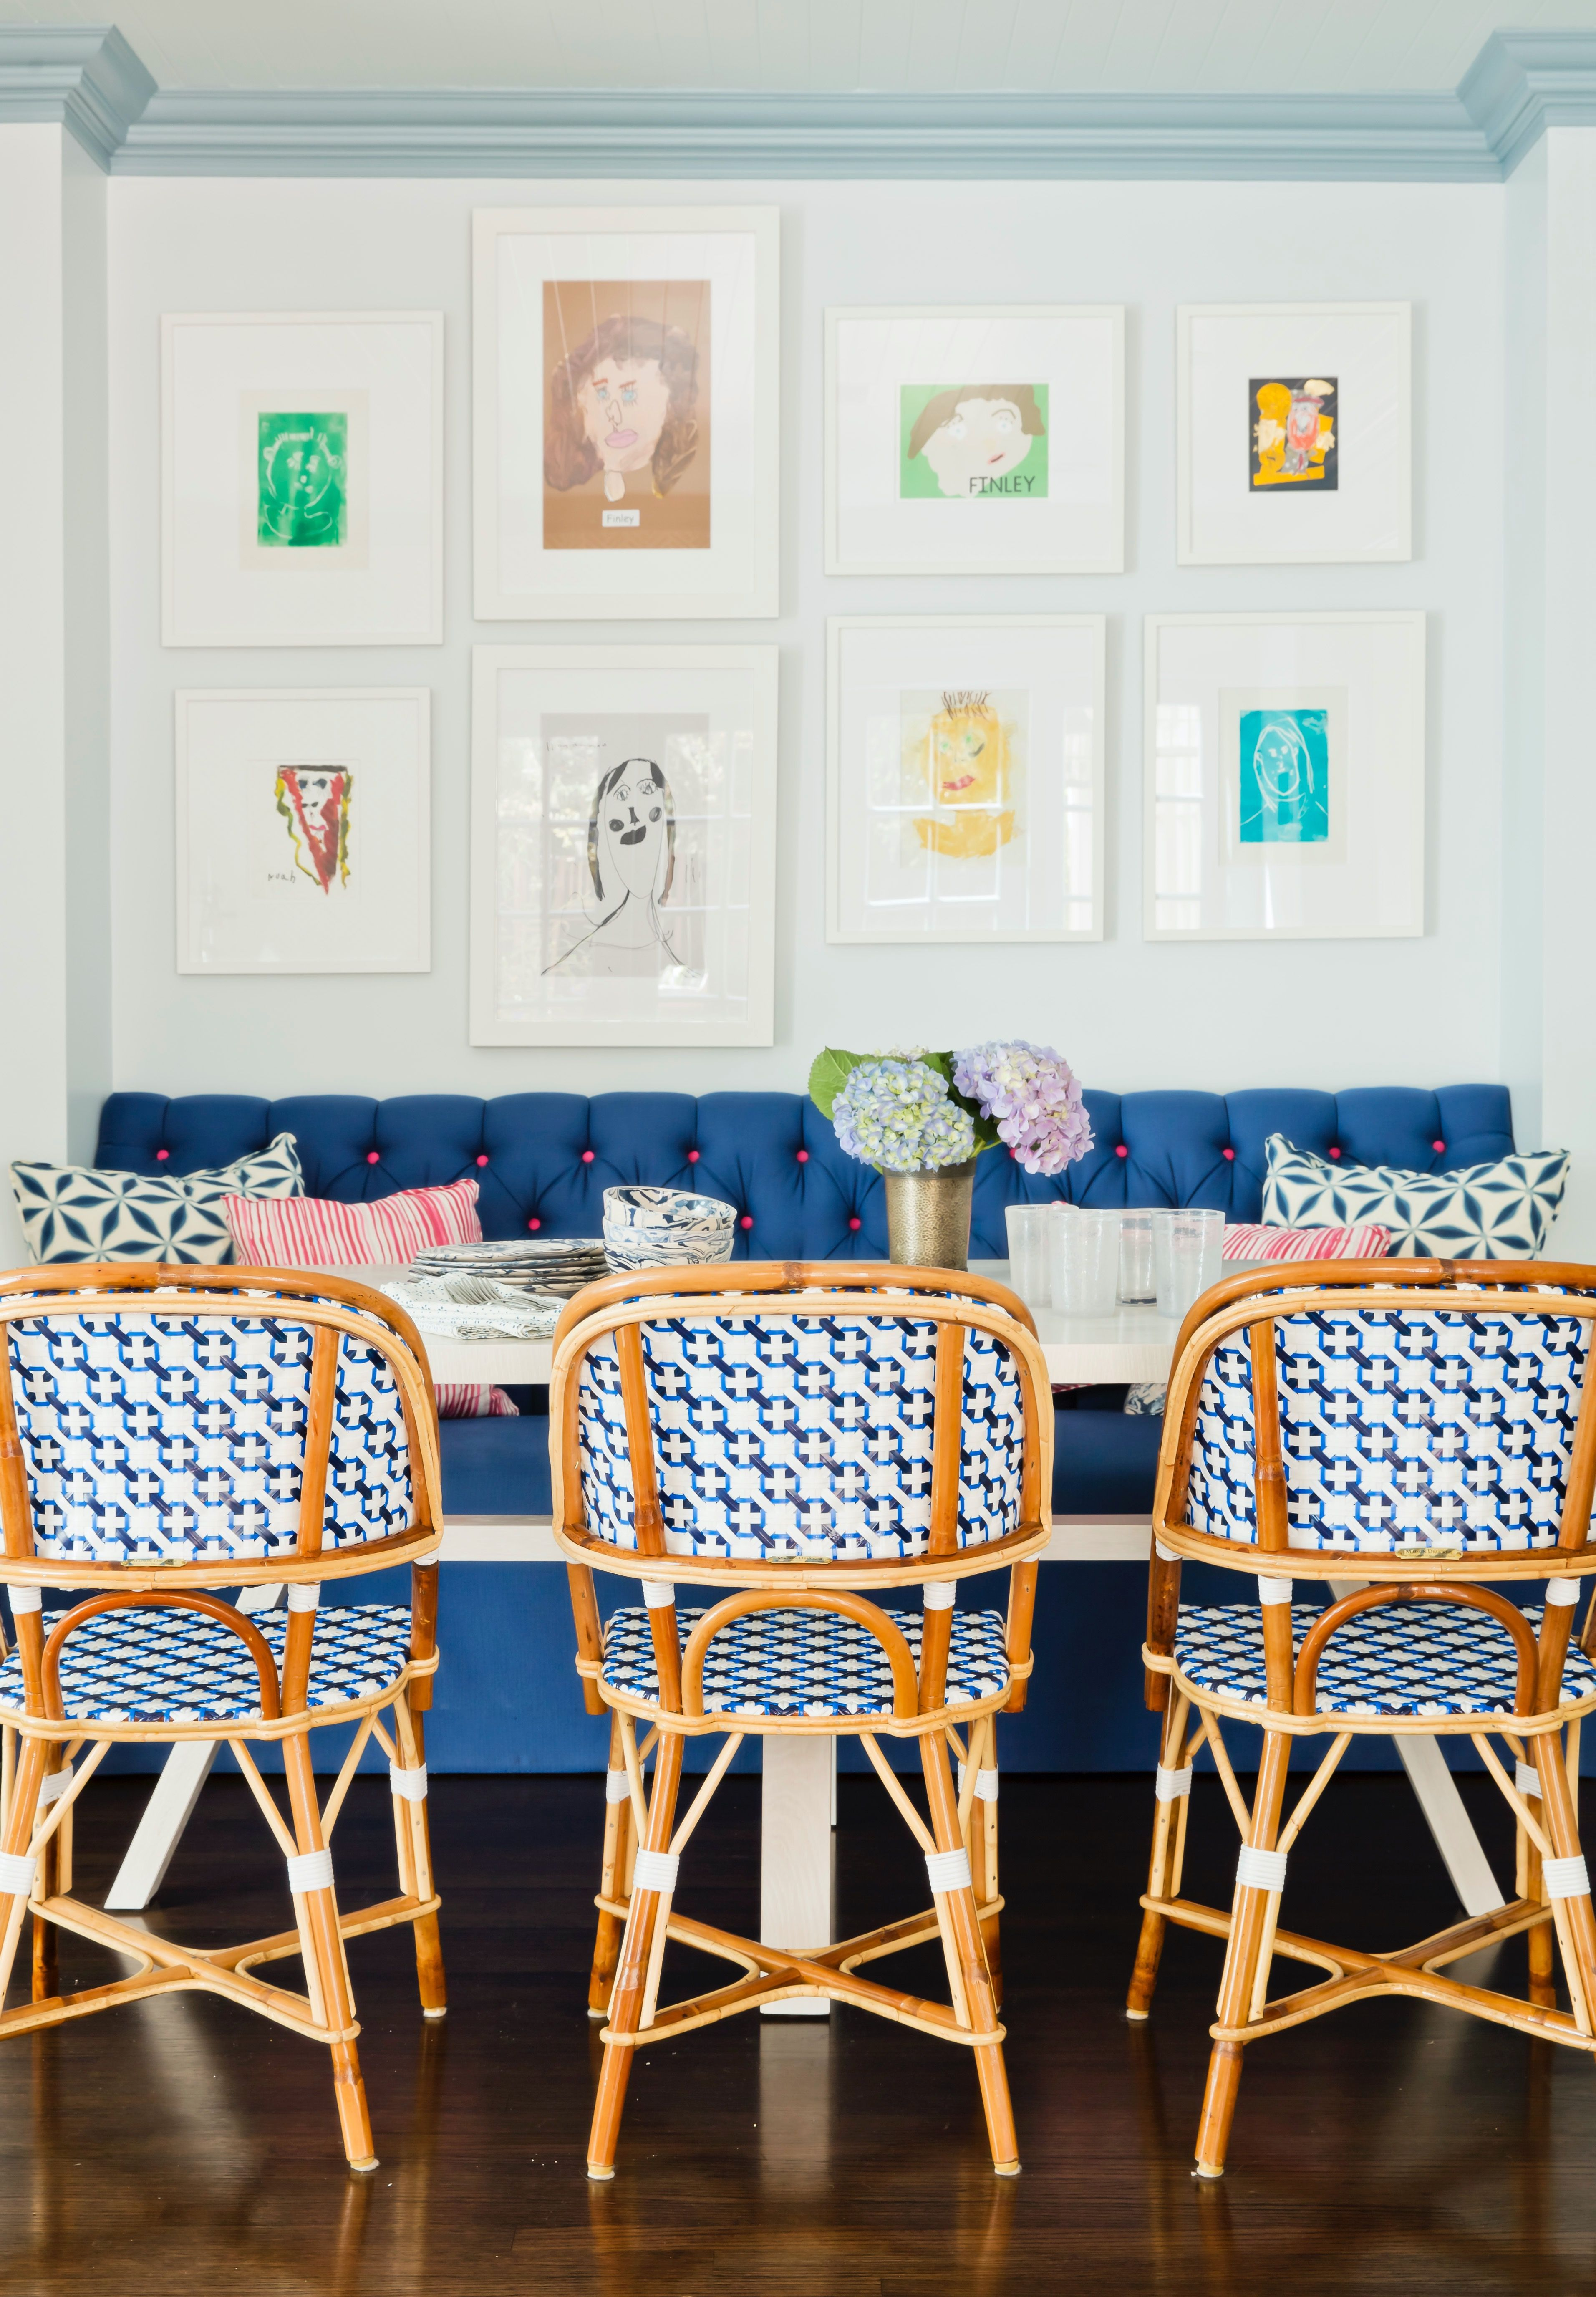 Love this home interior with kid art above the kitchen banquette. #homeinterior #kitchen #interiordesign